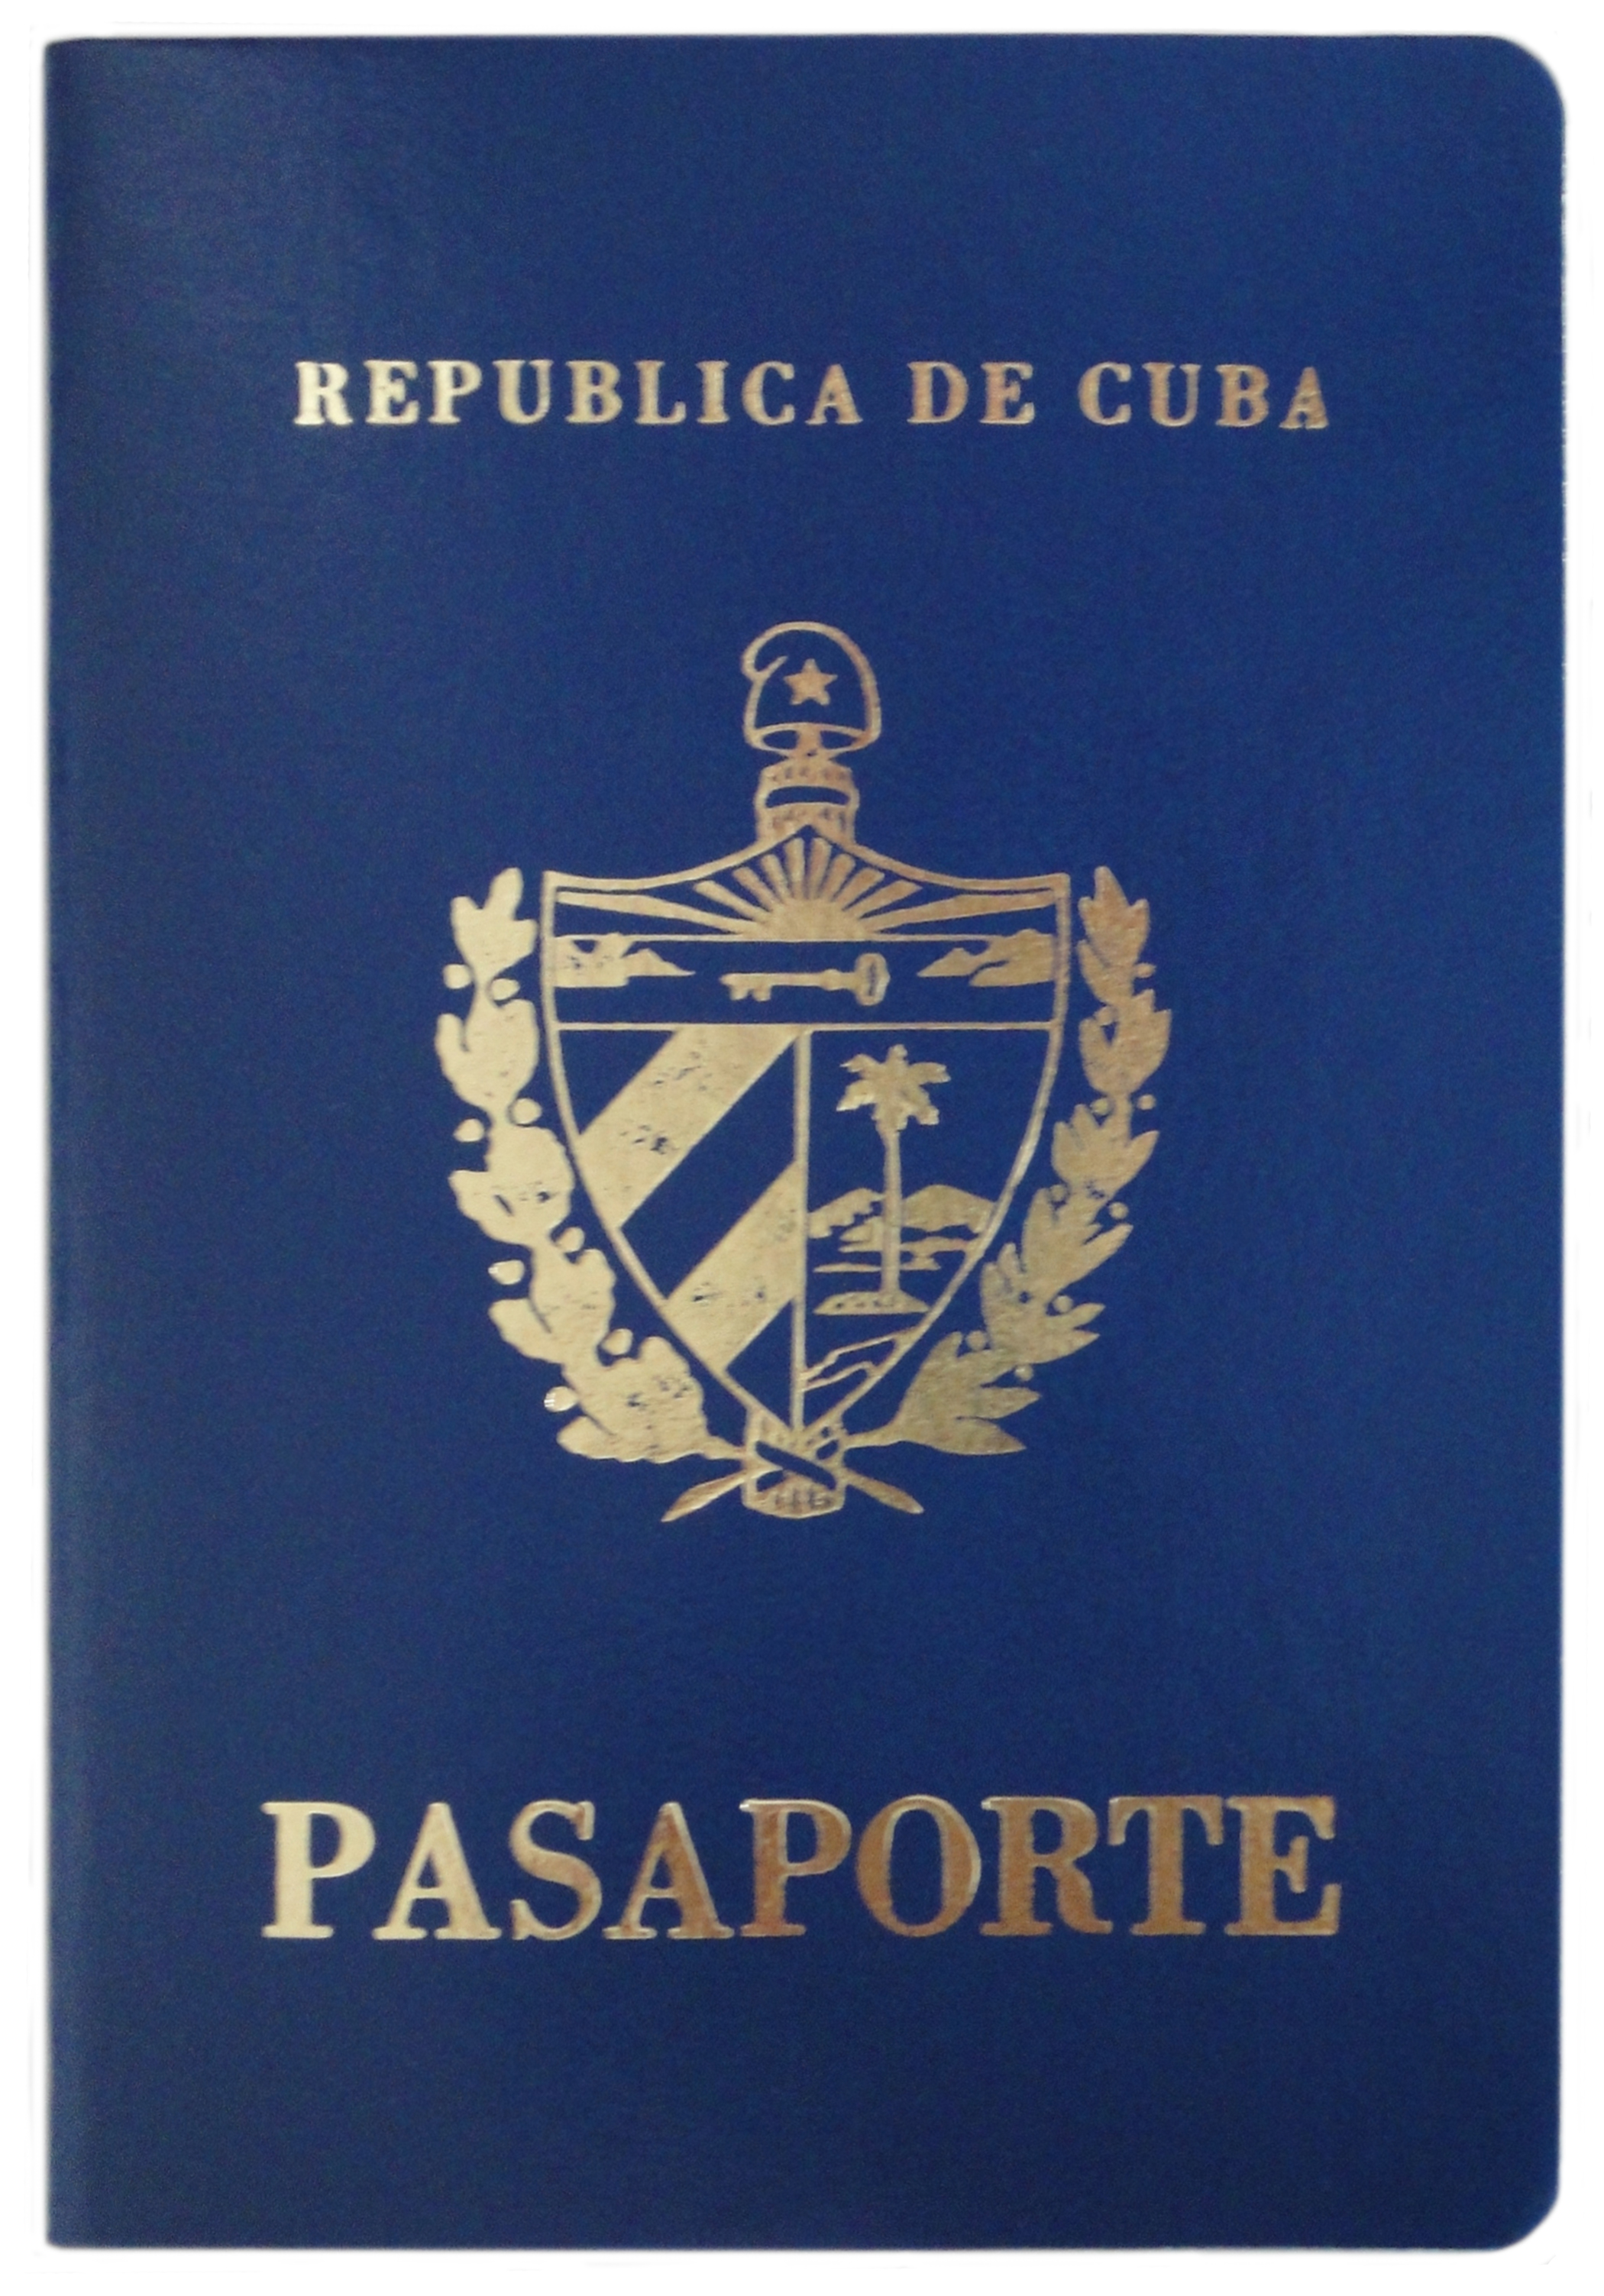 Current_cover_Cuban_passport.JPG